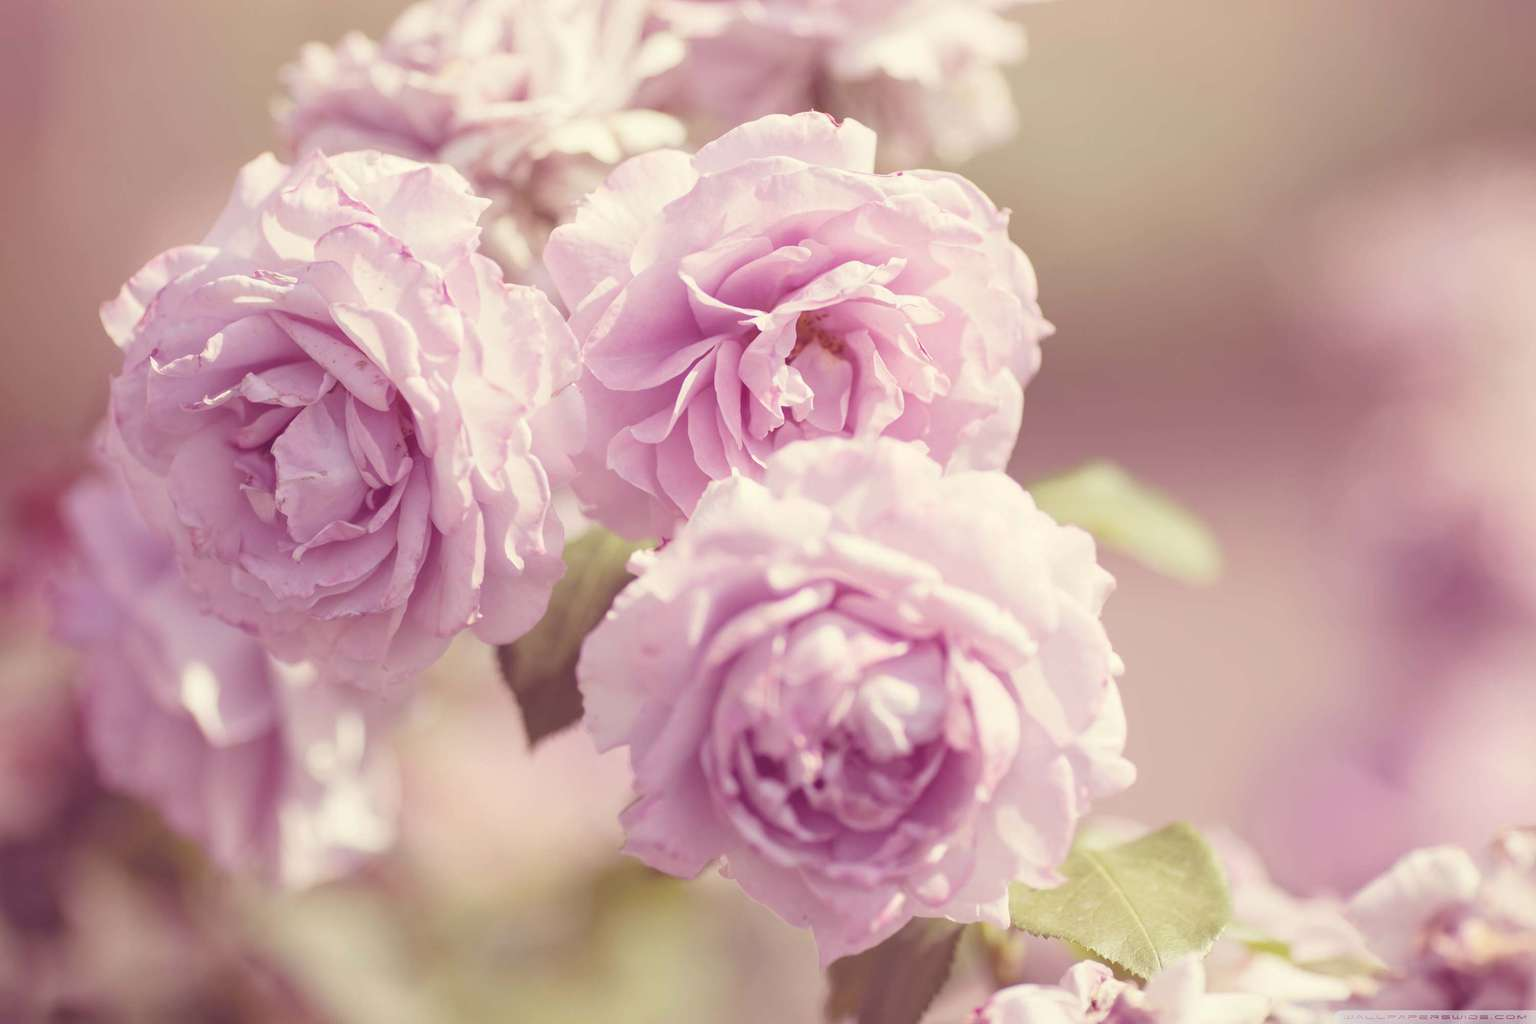 pink_roses_vintage-wallpaper-lovesove